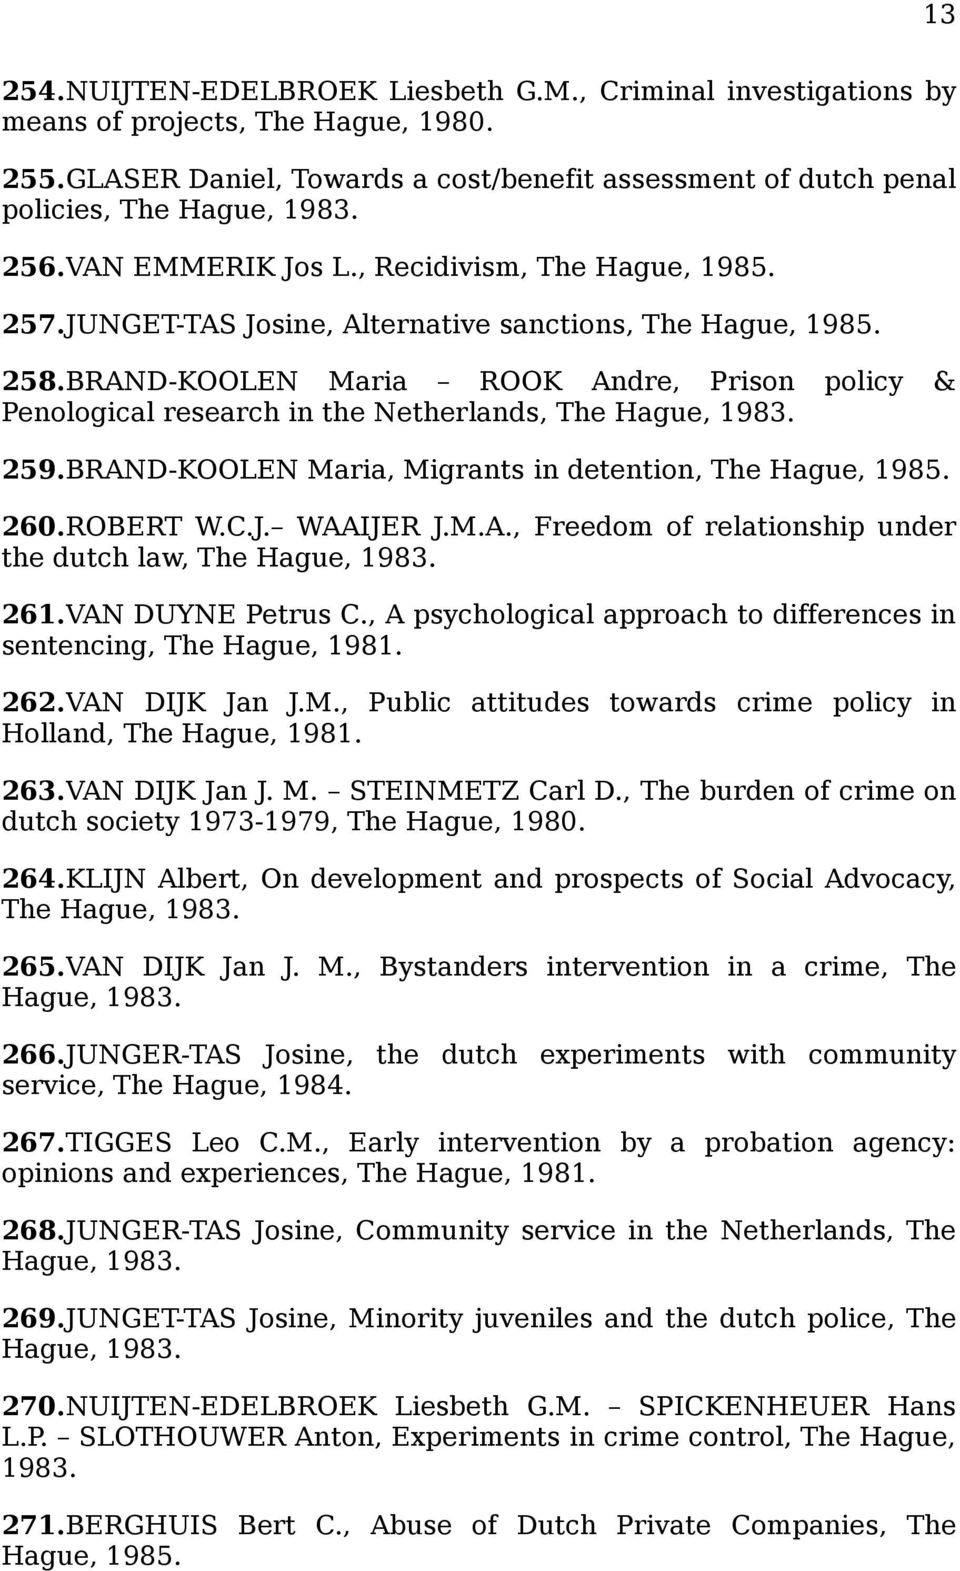 BRAND-KOOLEN Maria ROOK Andre, Prison policy & Penological research in the Netherlands, The Hague, 1983. 259.BRAND-KOOLEN Maria, Migrants in detention, The Hague, 1985. 260.ROBERT W.C.J. WAAIJER J.M.A., Freedom of relationship under the dutch law, The Hague, 1983.